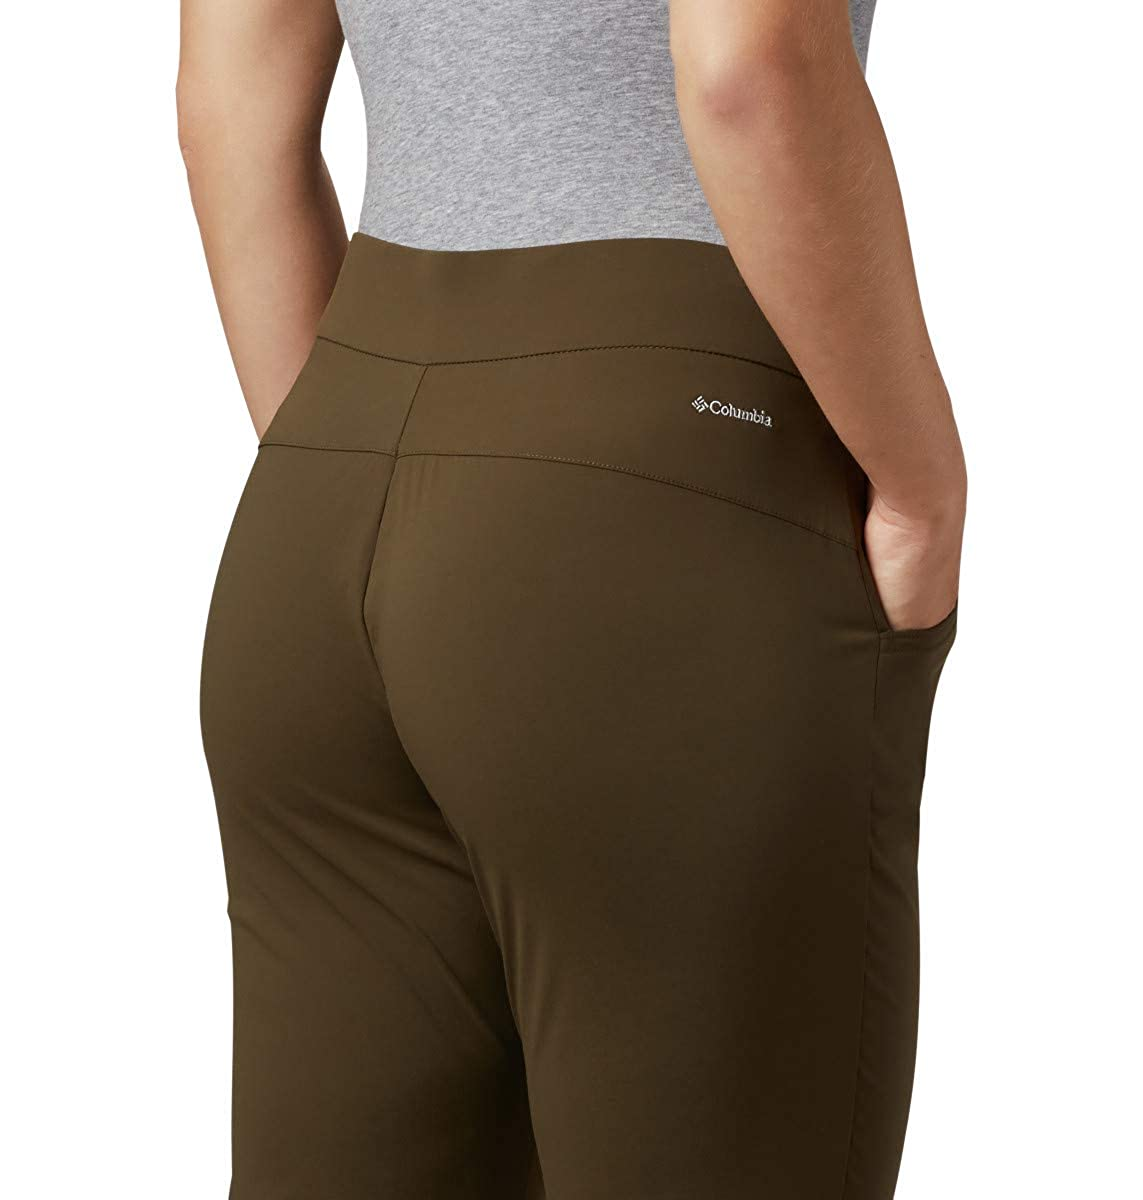 Columbia Womens Anytime Casual Pull On Pant w//UPF 50 Pants